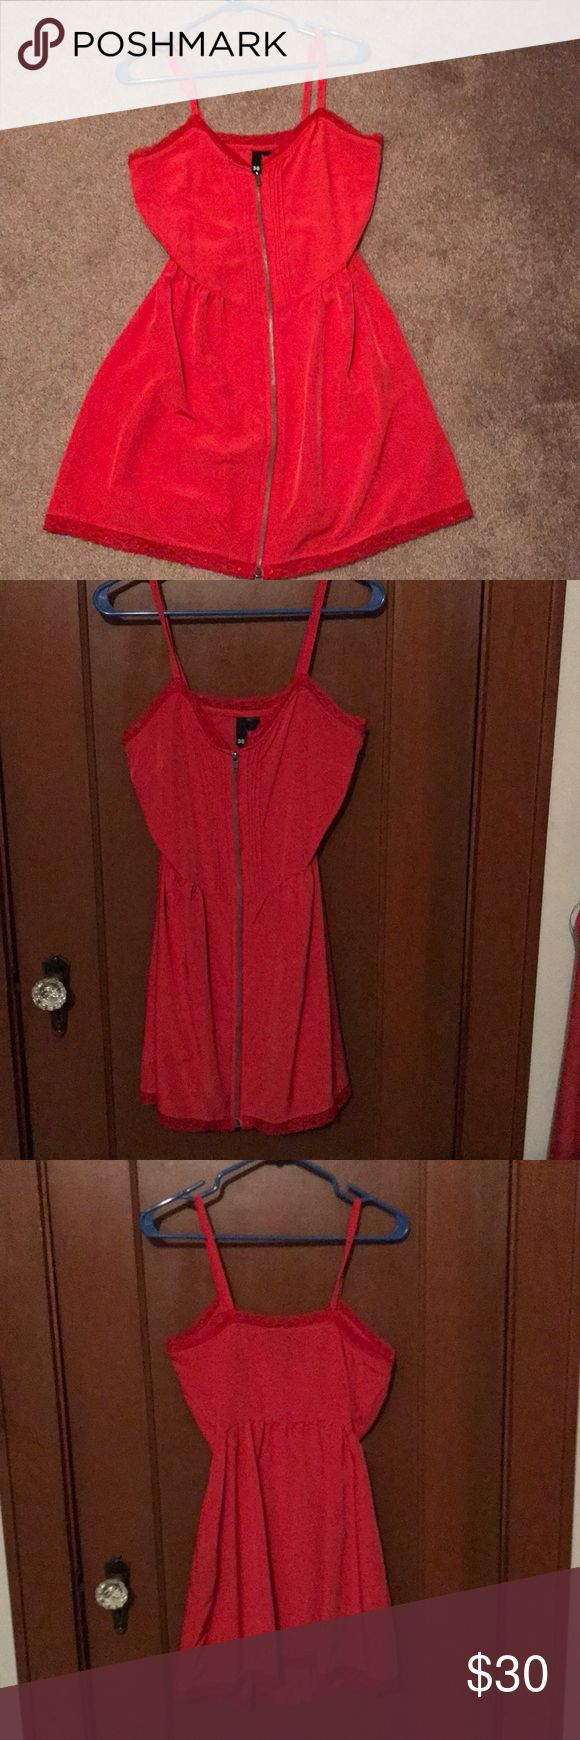 Red Cami Dress Red zip up cami dress- very flattering. Gently used. Size38 European- fits like a size 6-8 Dresses Mini